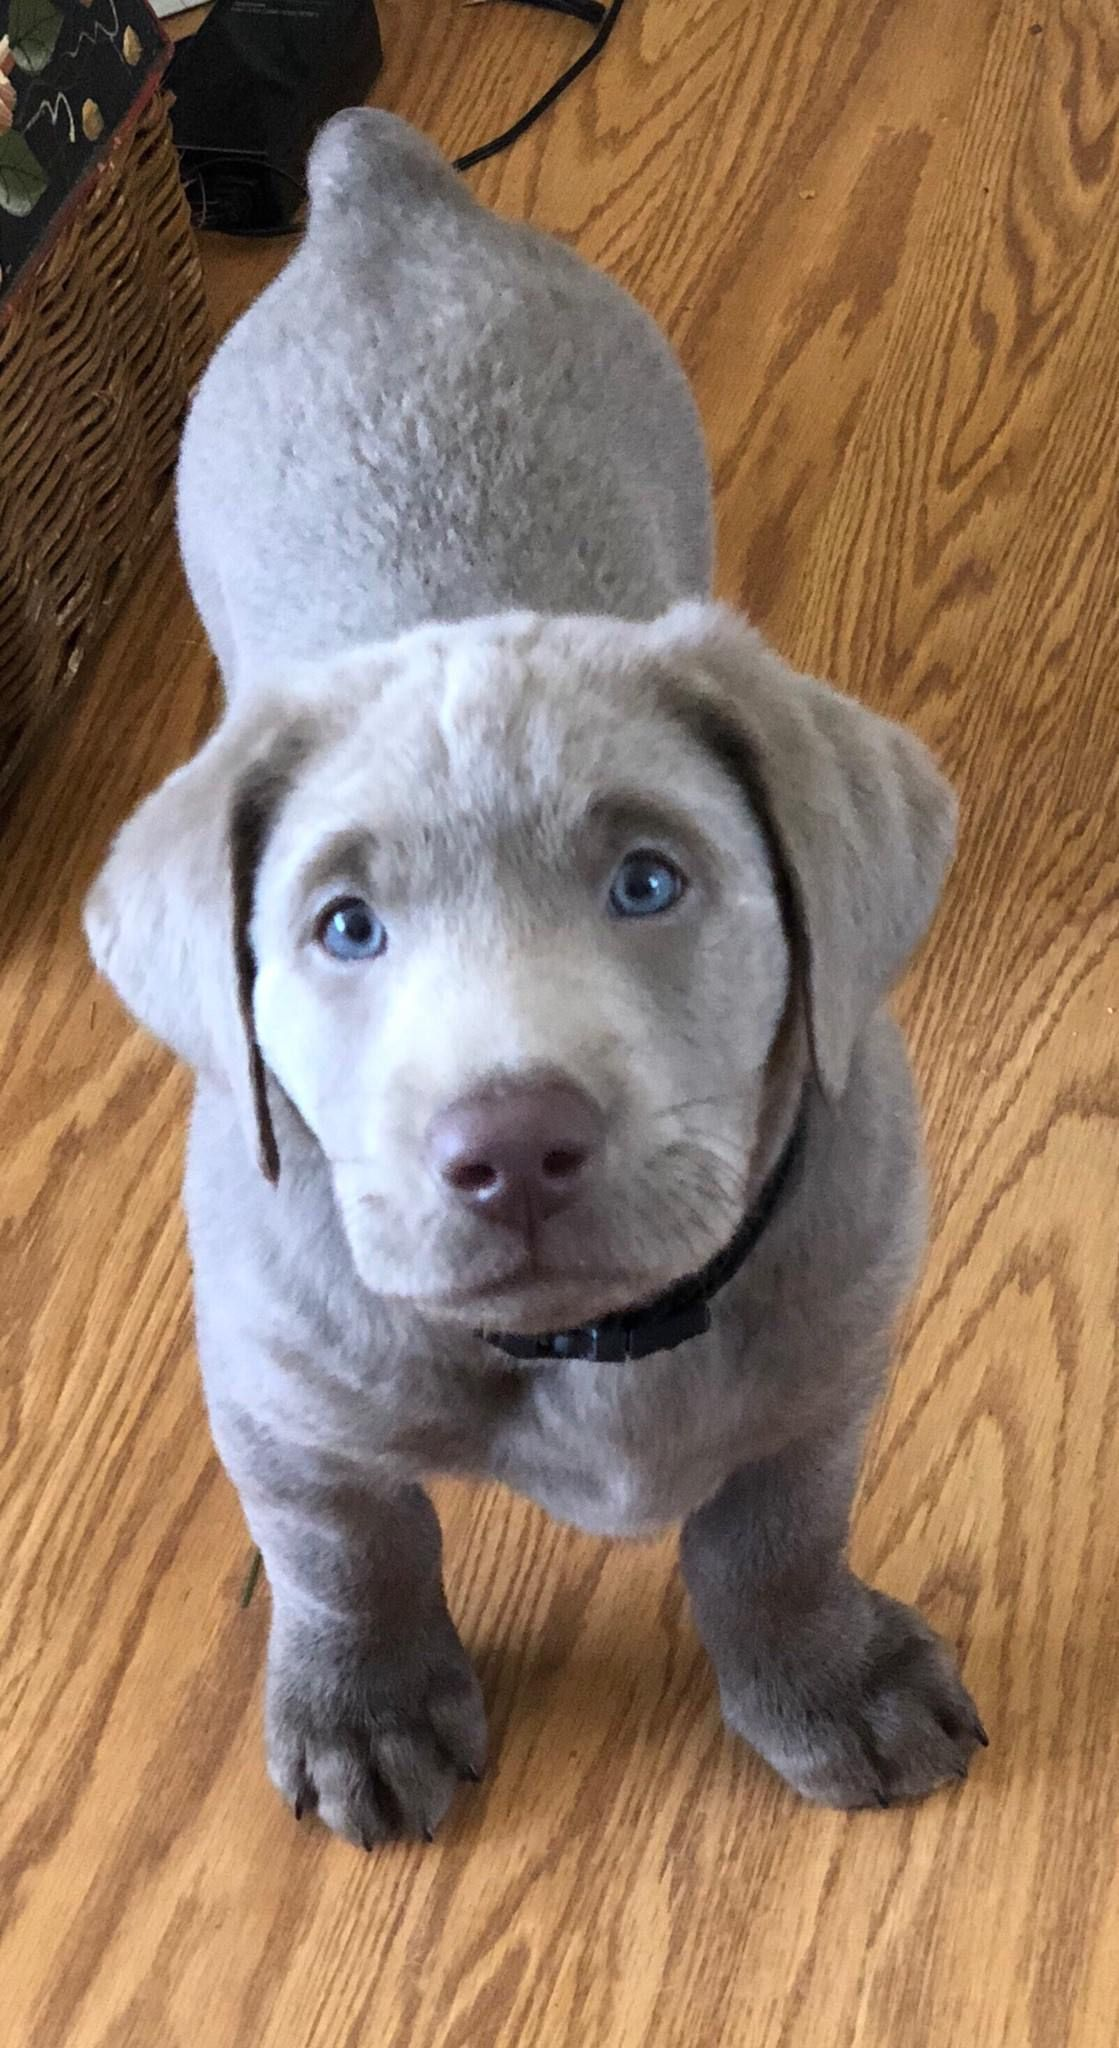 8 Week Old Silver Lab Dogpictures Dogs Aww Cuteanimals Dogsoftwitter Dog Cute Labrador Retriever Dog Labrador Puppy Labrador Retriever Puppies